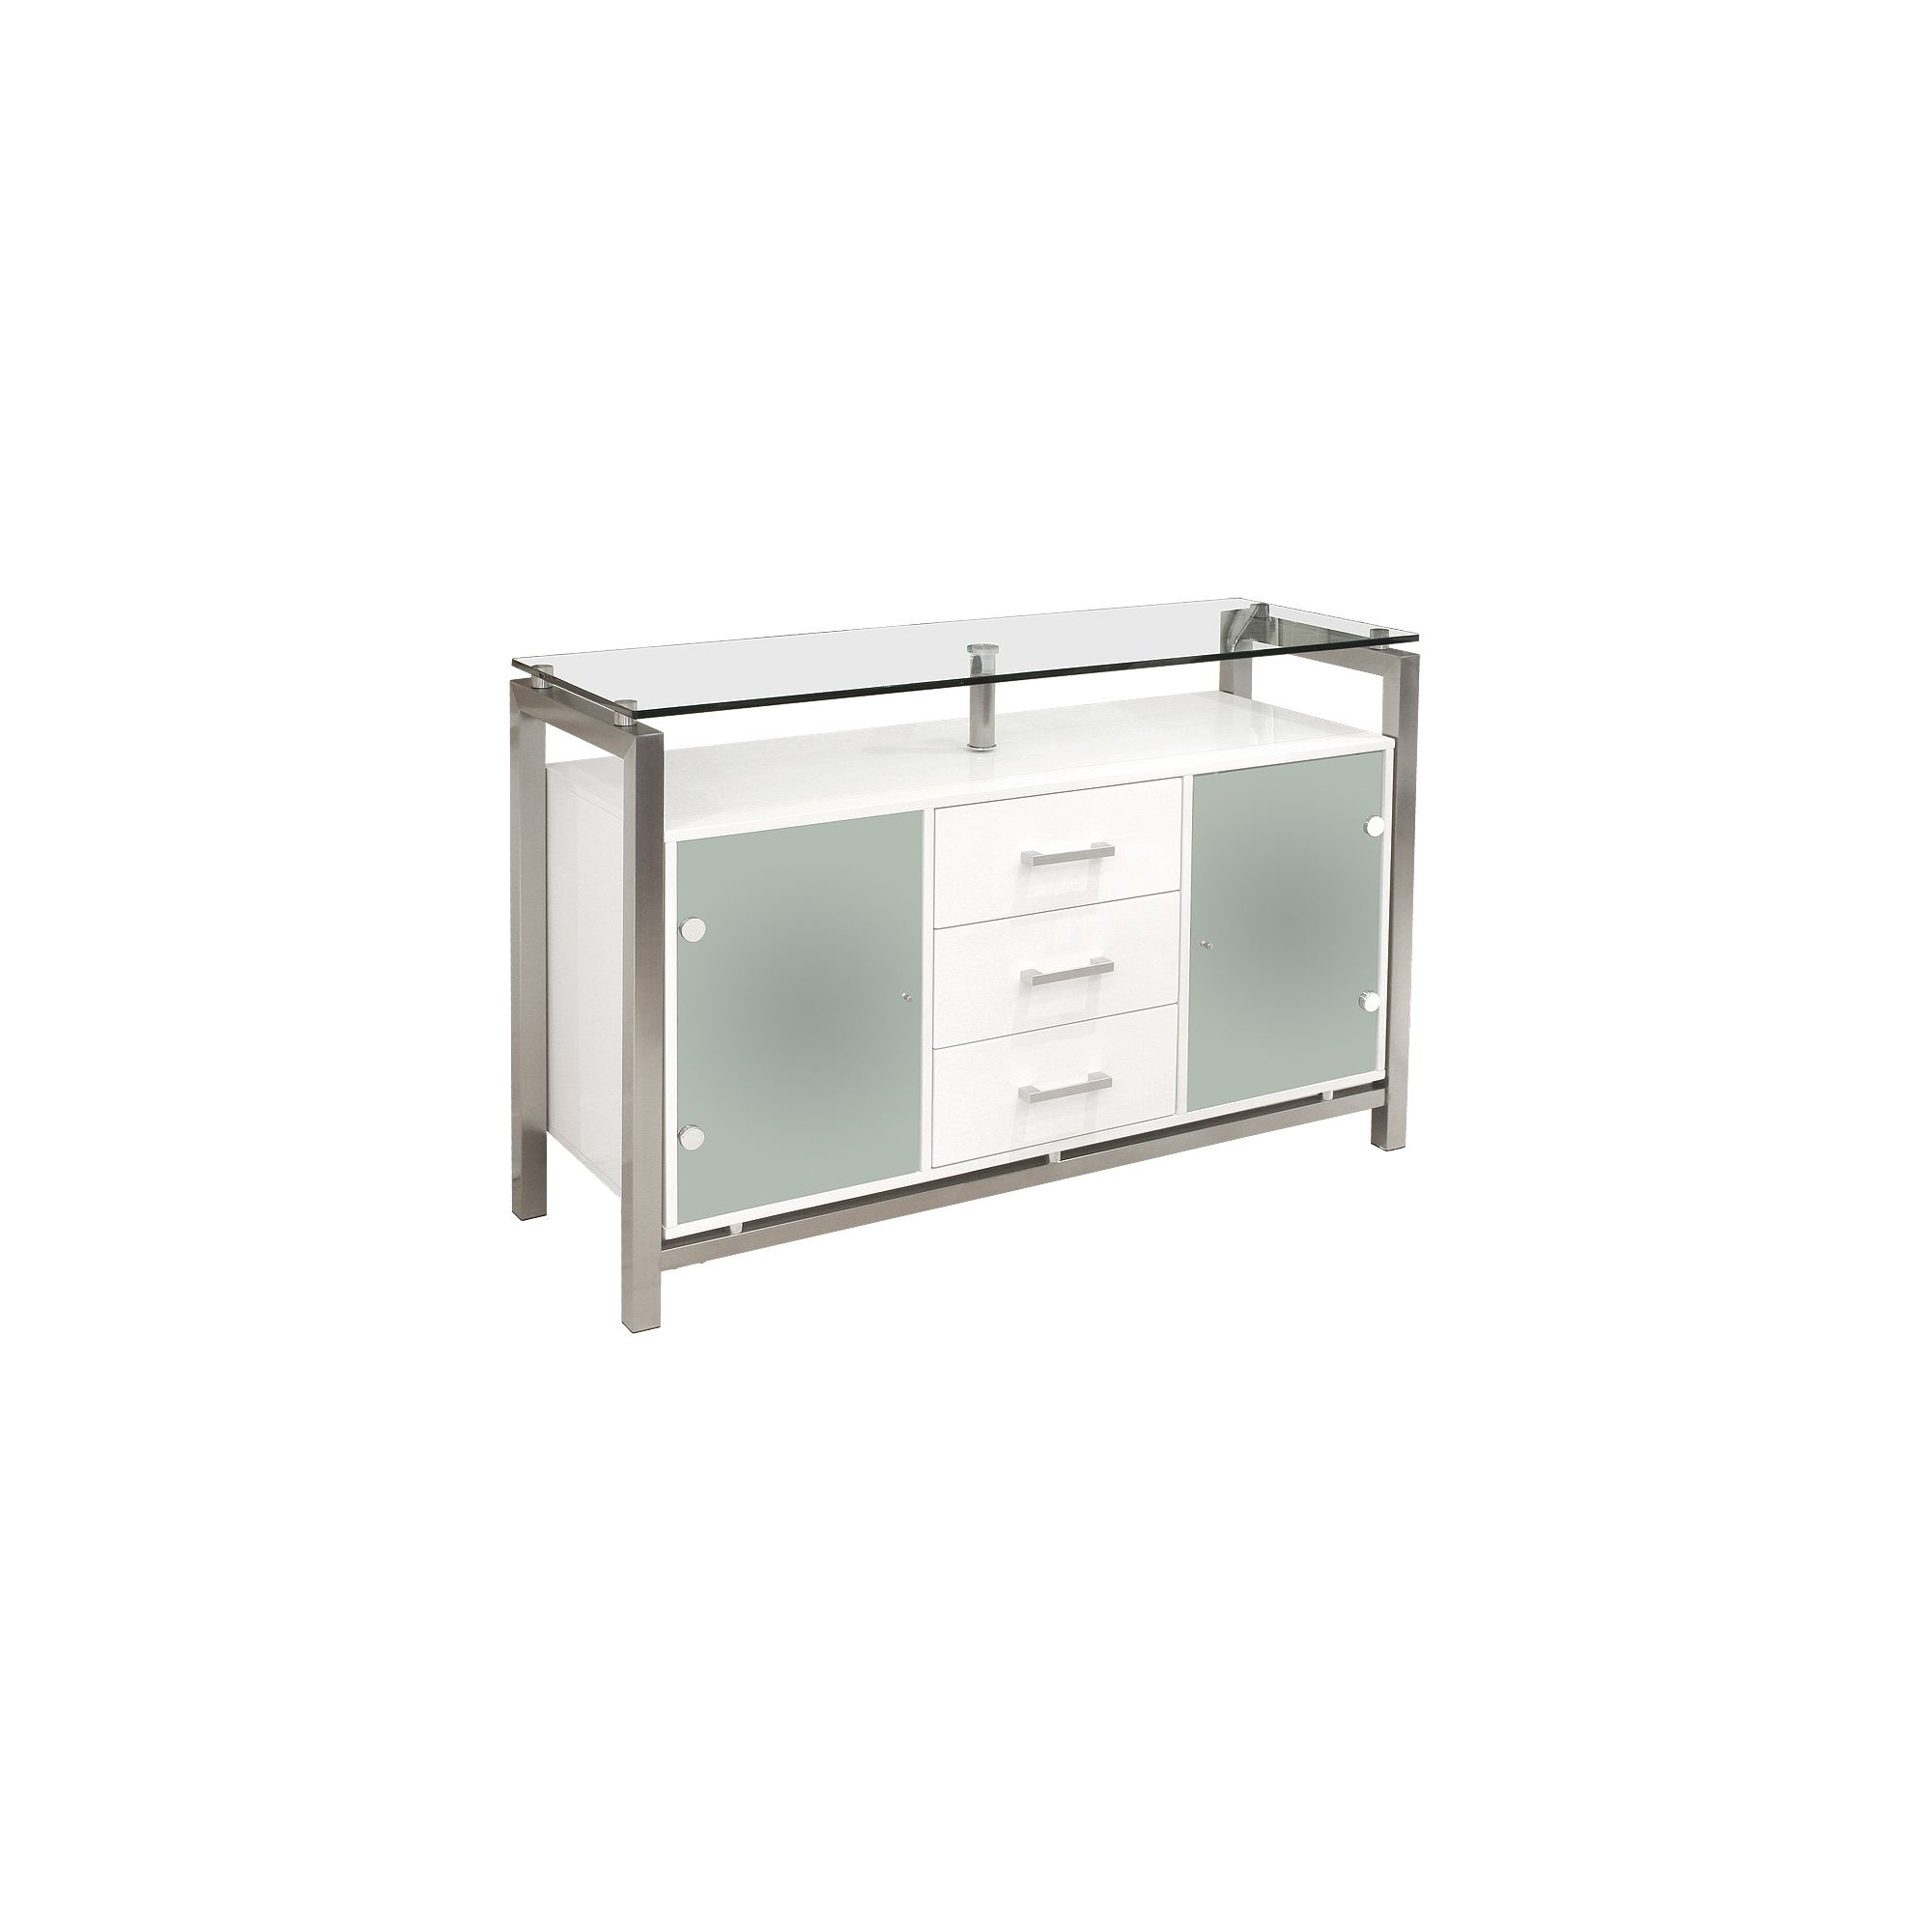 Home Essence 3 Drawer Display Cabinet - White at Tesco Direct